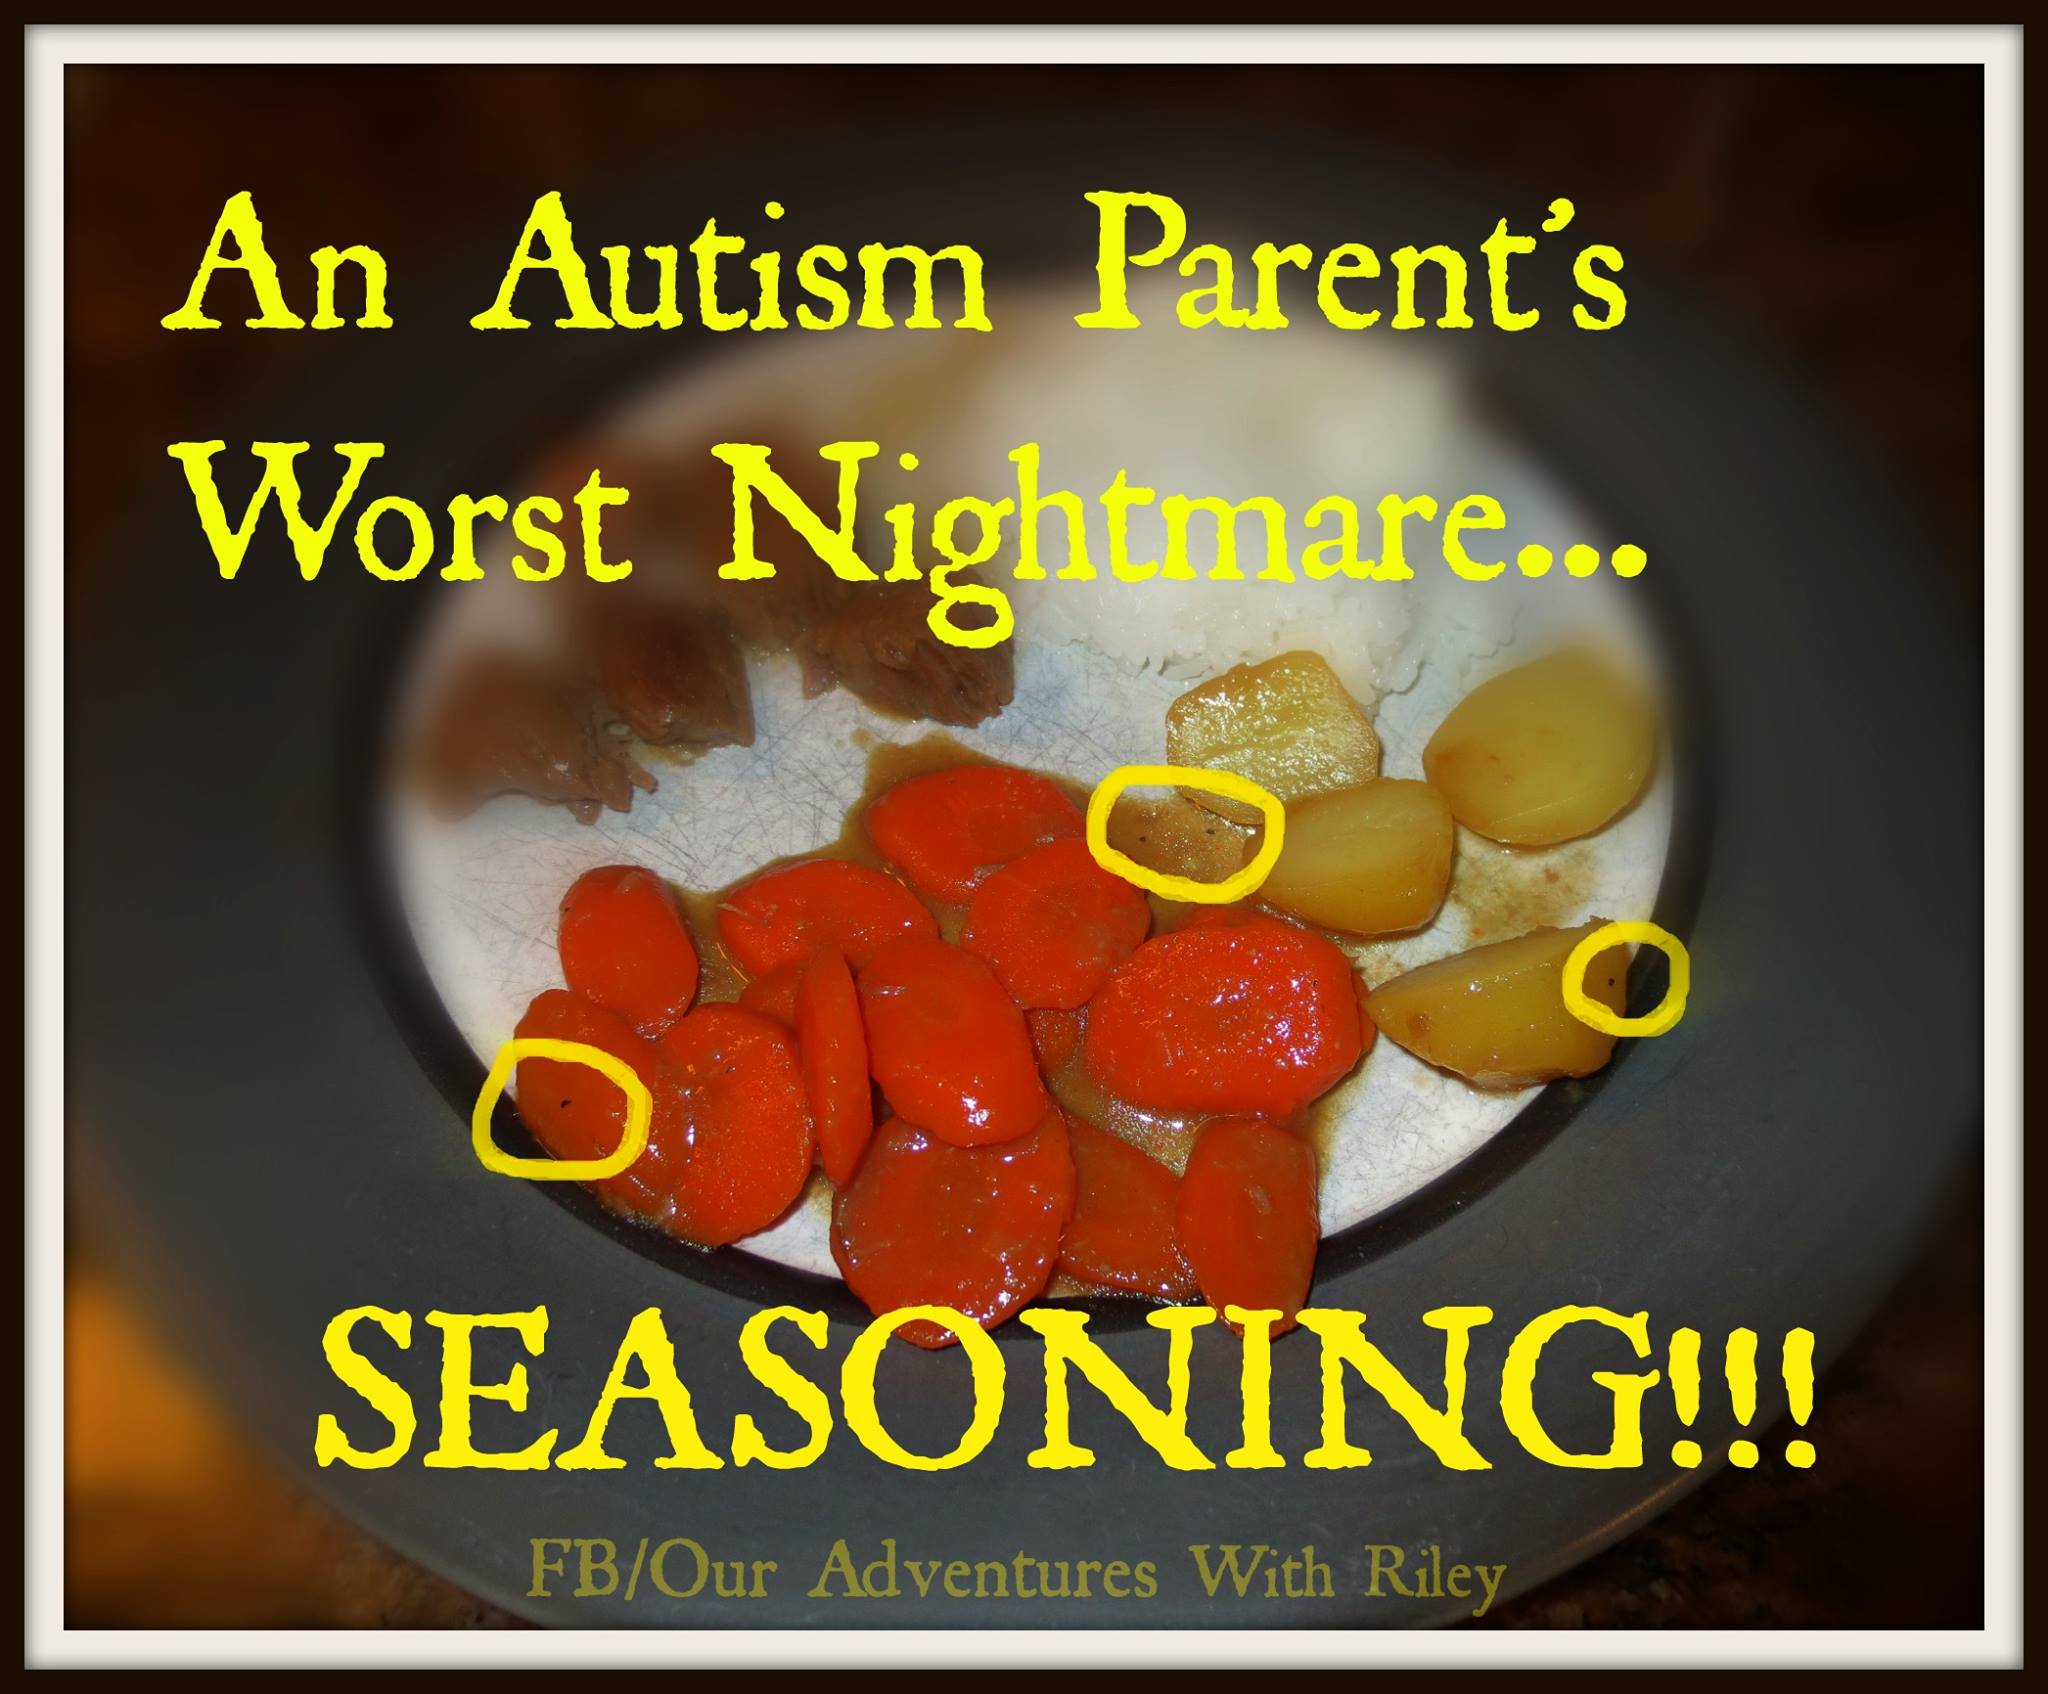 12132539_906313236109691_4708373700298565137_o best autism parent memes the mighty